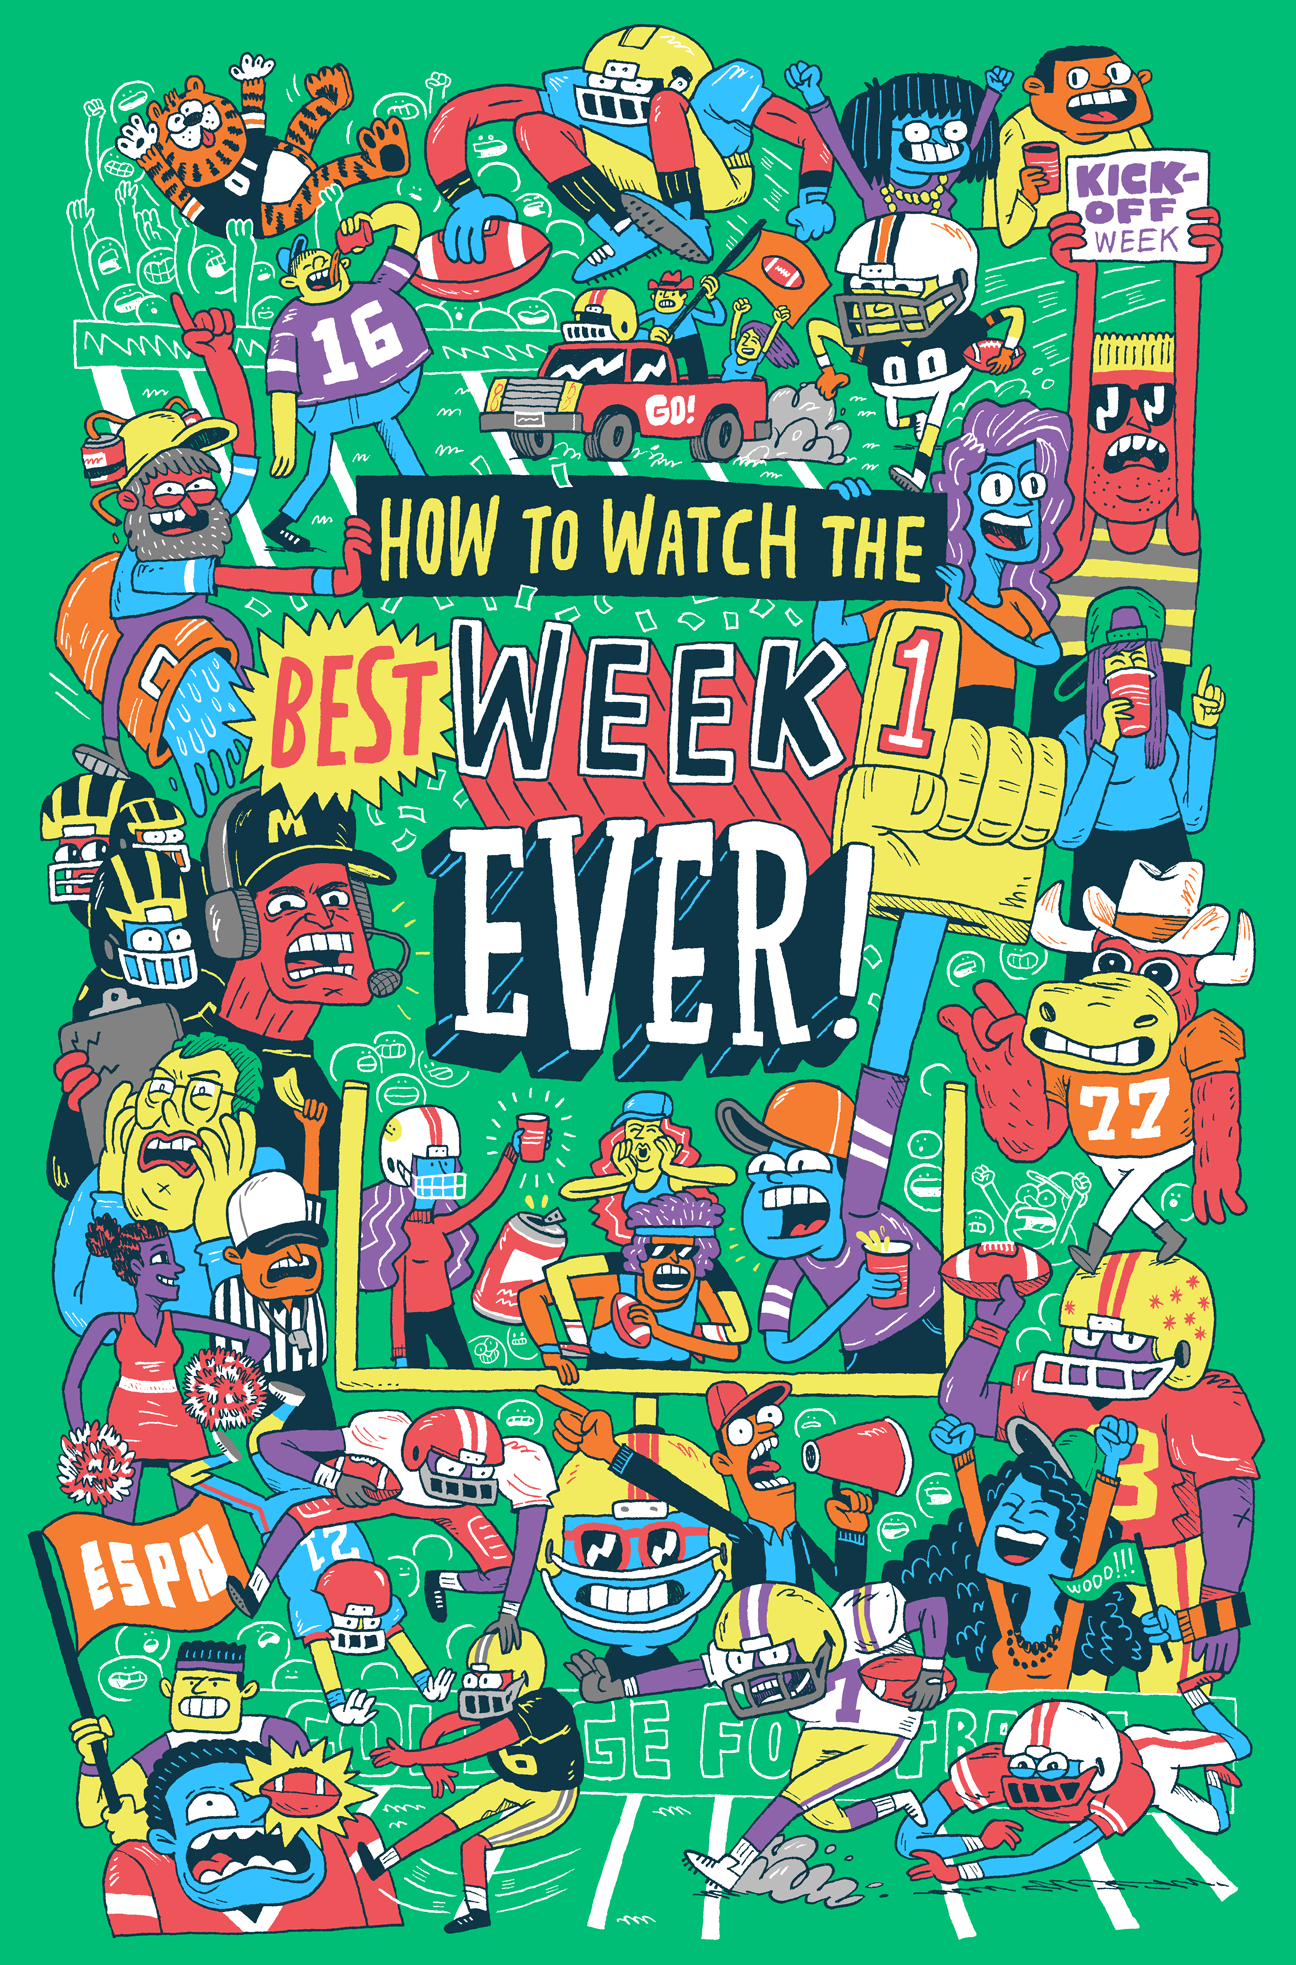 An Illustrated Guide To Kickoff Week For A College Football Couch